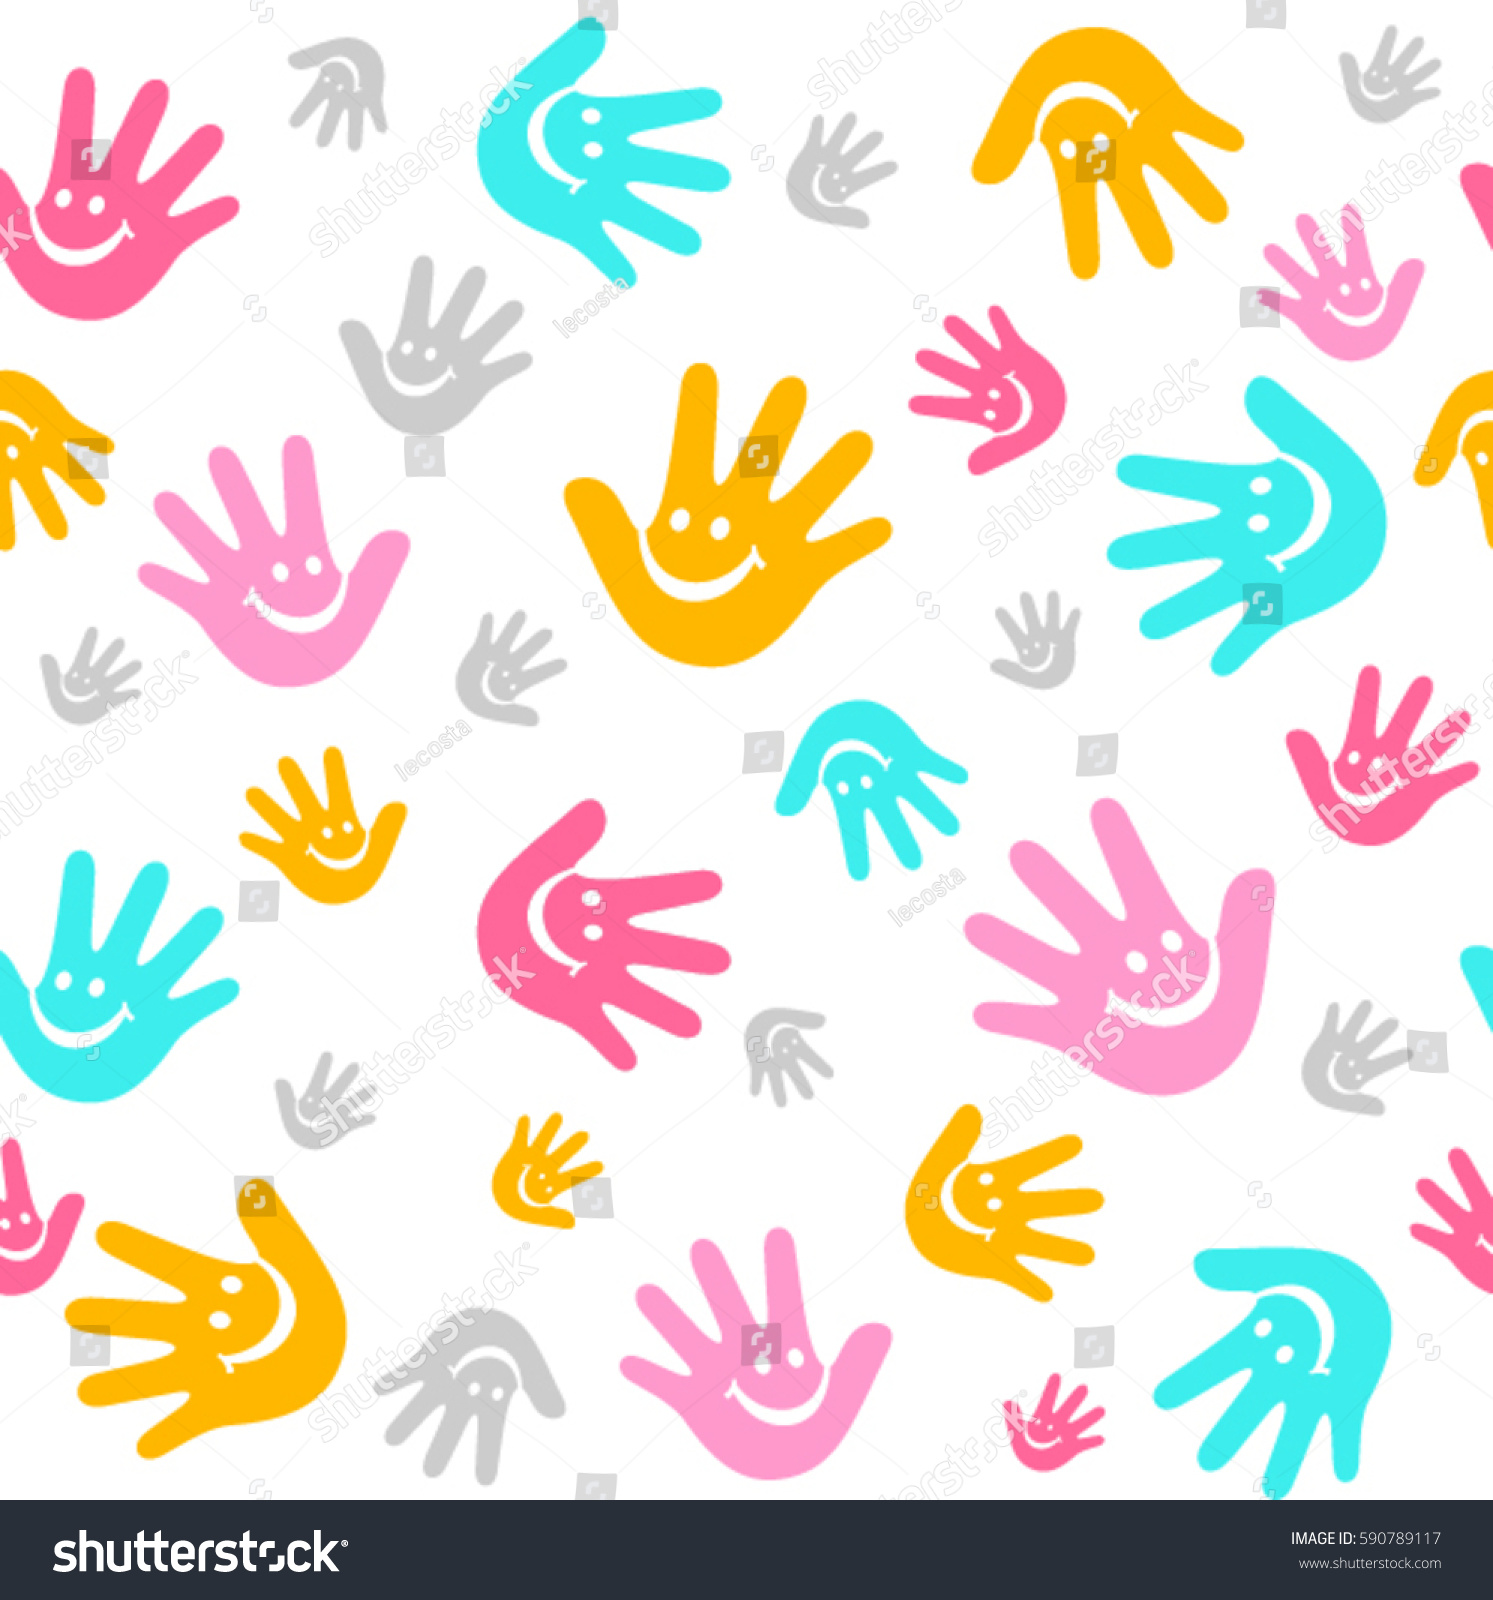 Kids Hand Print Background Stock Vector (Royalty Free) 590789117 ...